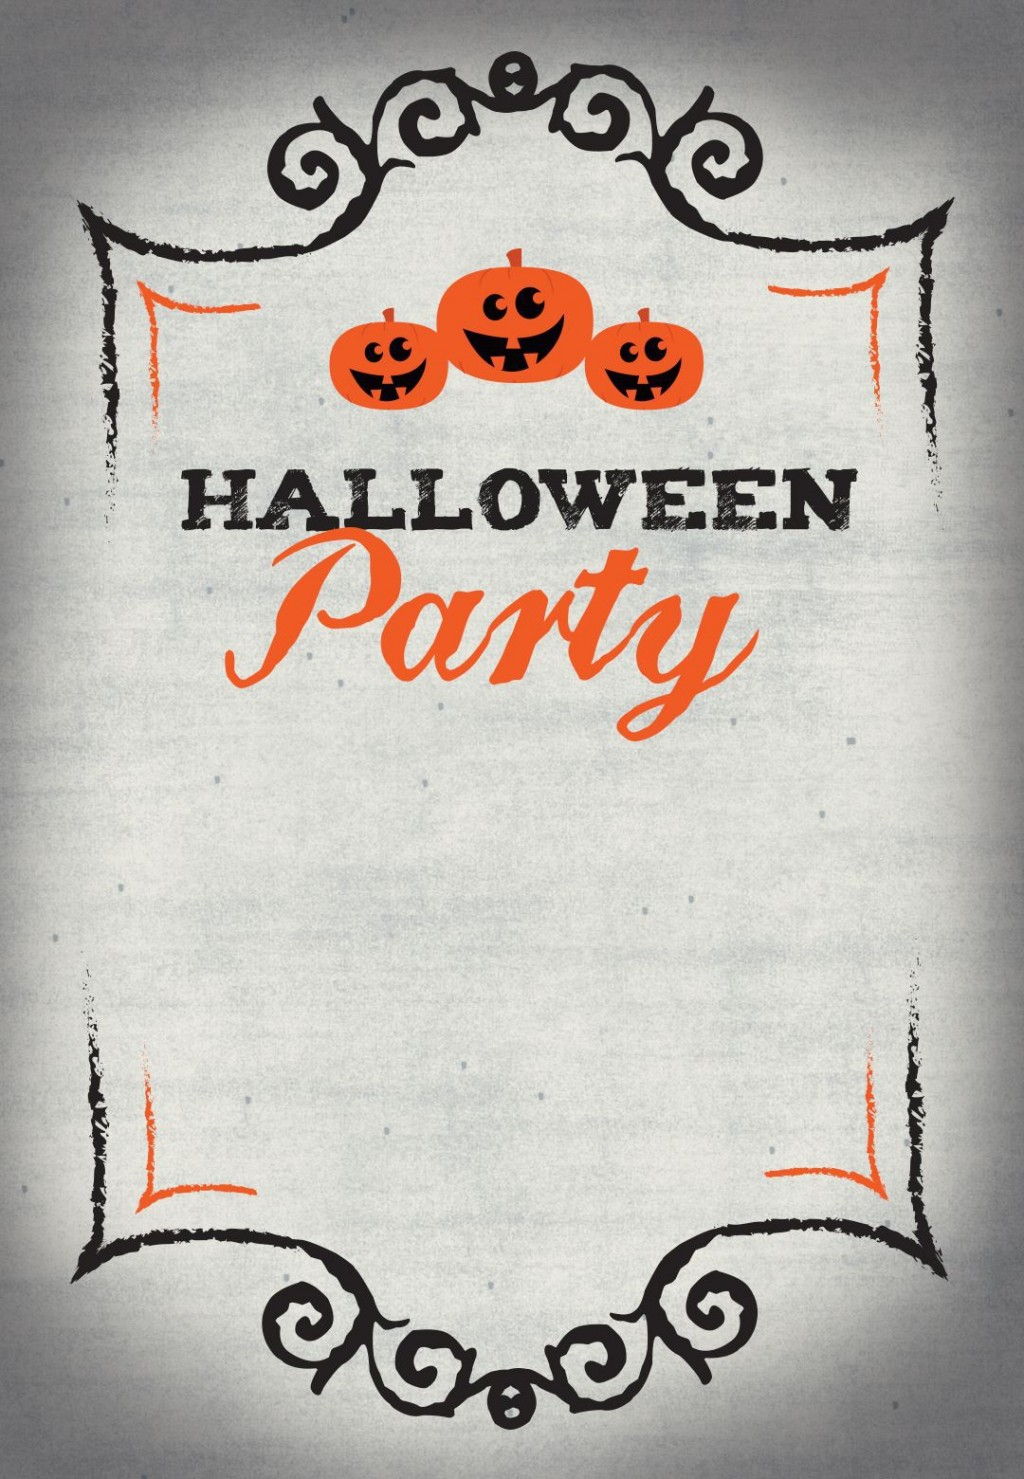 007 Incredible Free Halloween Invitation Template Example  Templates Microsoft Word Wedding Printable PartyLarge